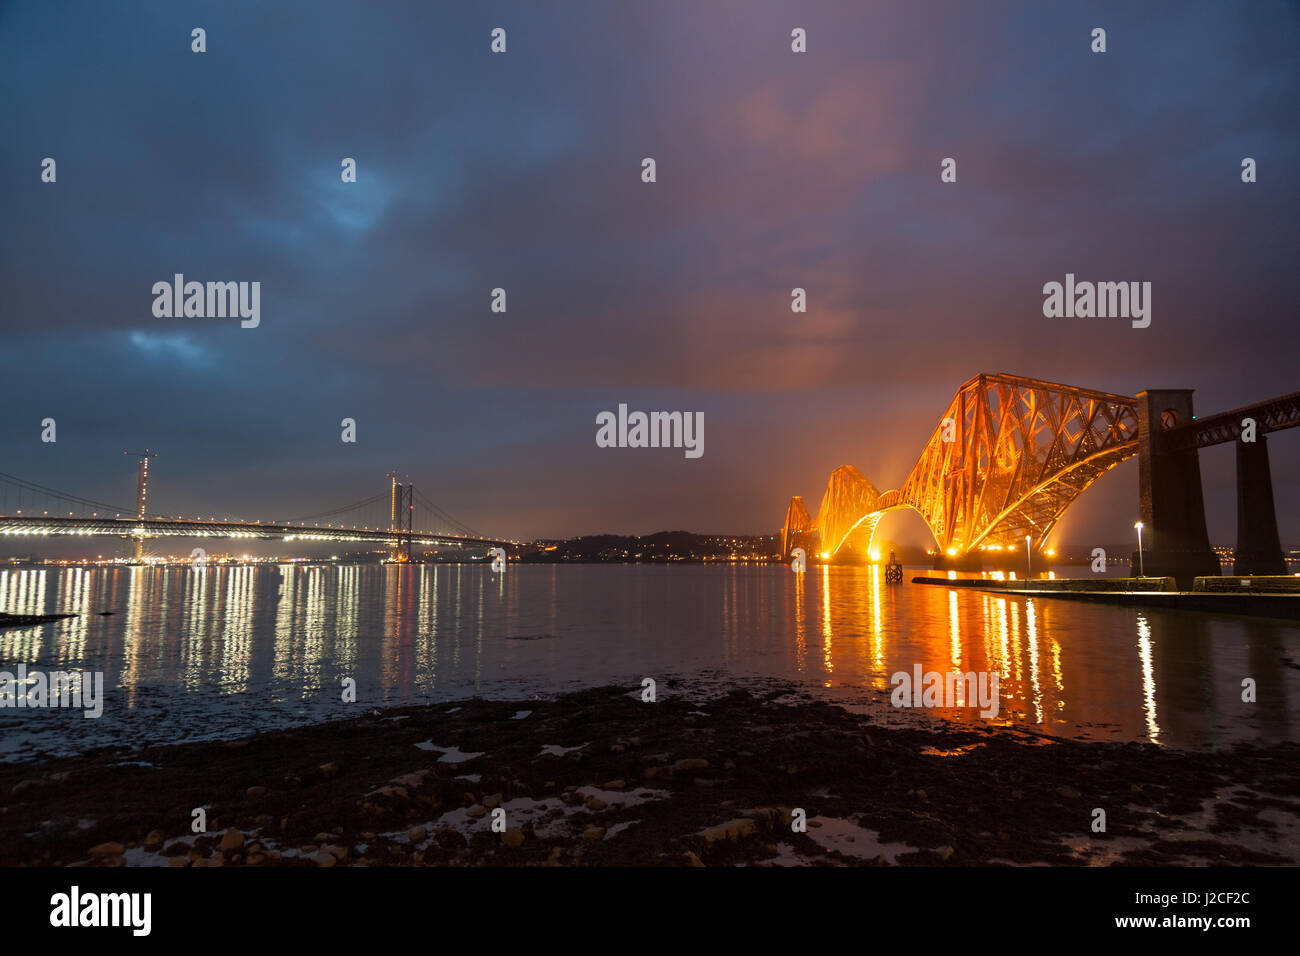 The iconic Forth Rail Bridge lit up at dusk. South Queensferry, Edinburgh, Scotland - Stock Image